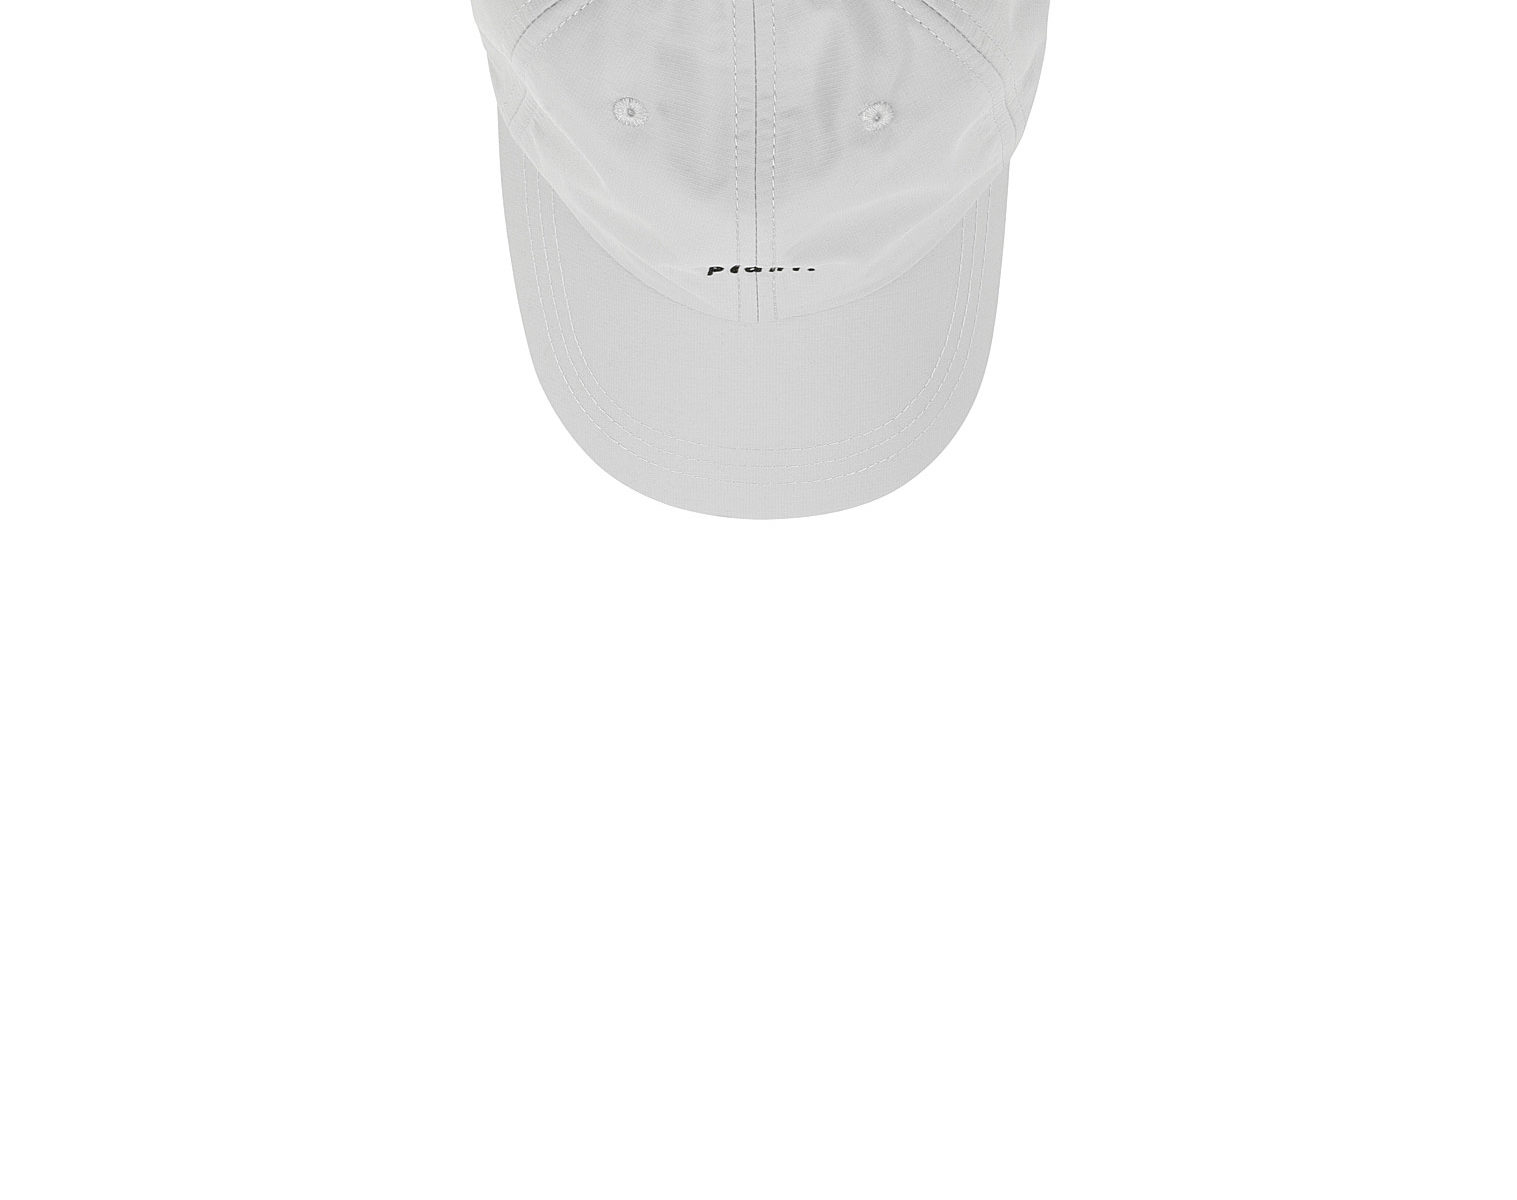 SONG FOR THE MUTE Plant Cap white 01